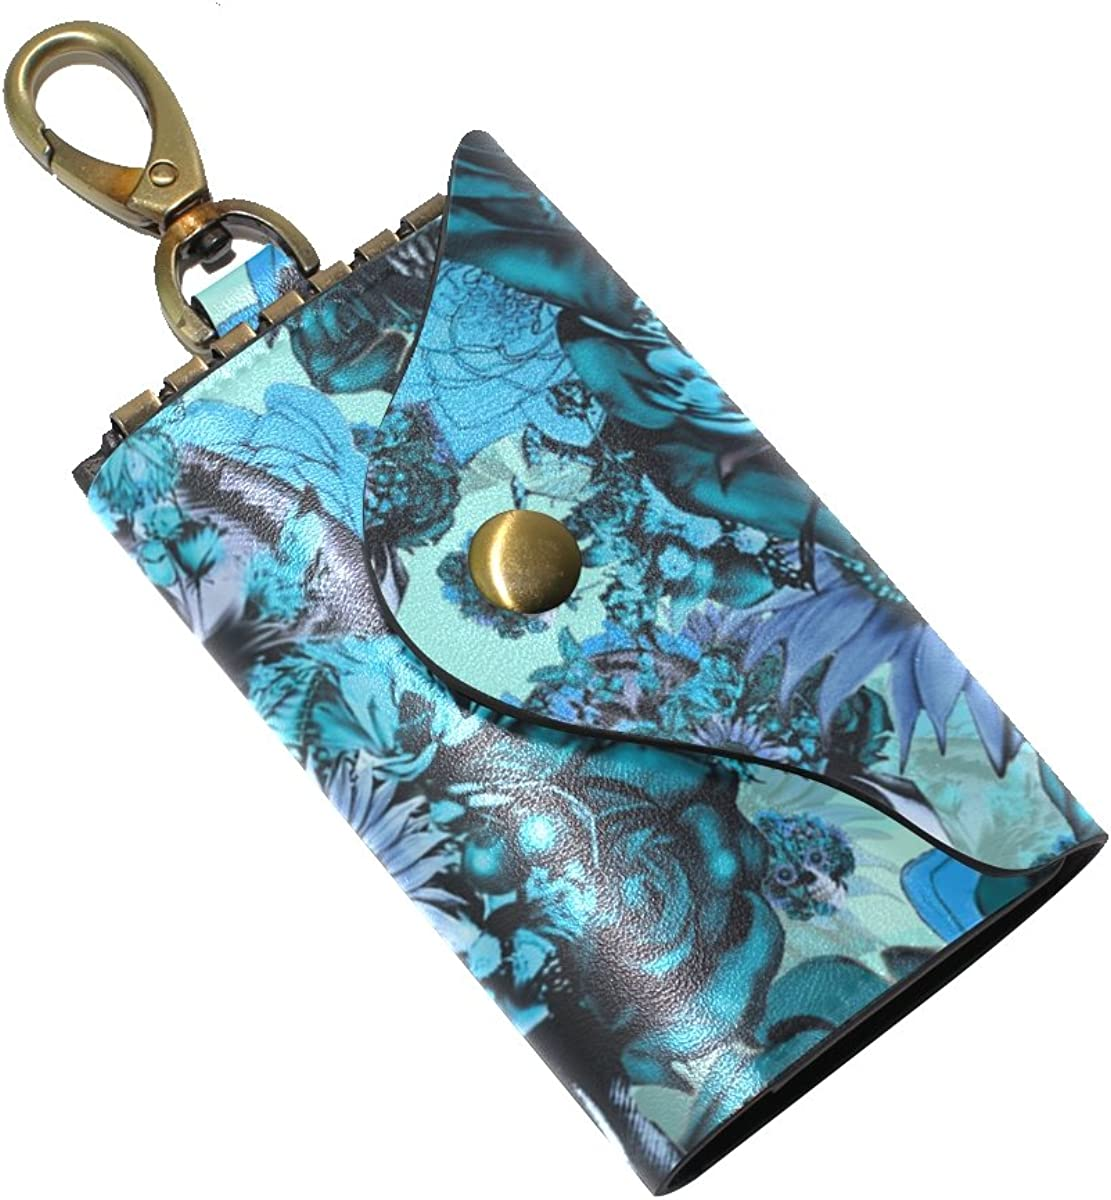 DEYYA Blue Sugar Skull Leather Key Case Wallets Unisex Keychain Key Holder with 6 Hooks Snap Closure